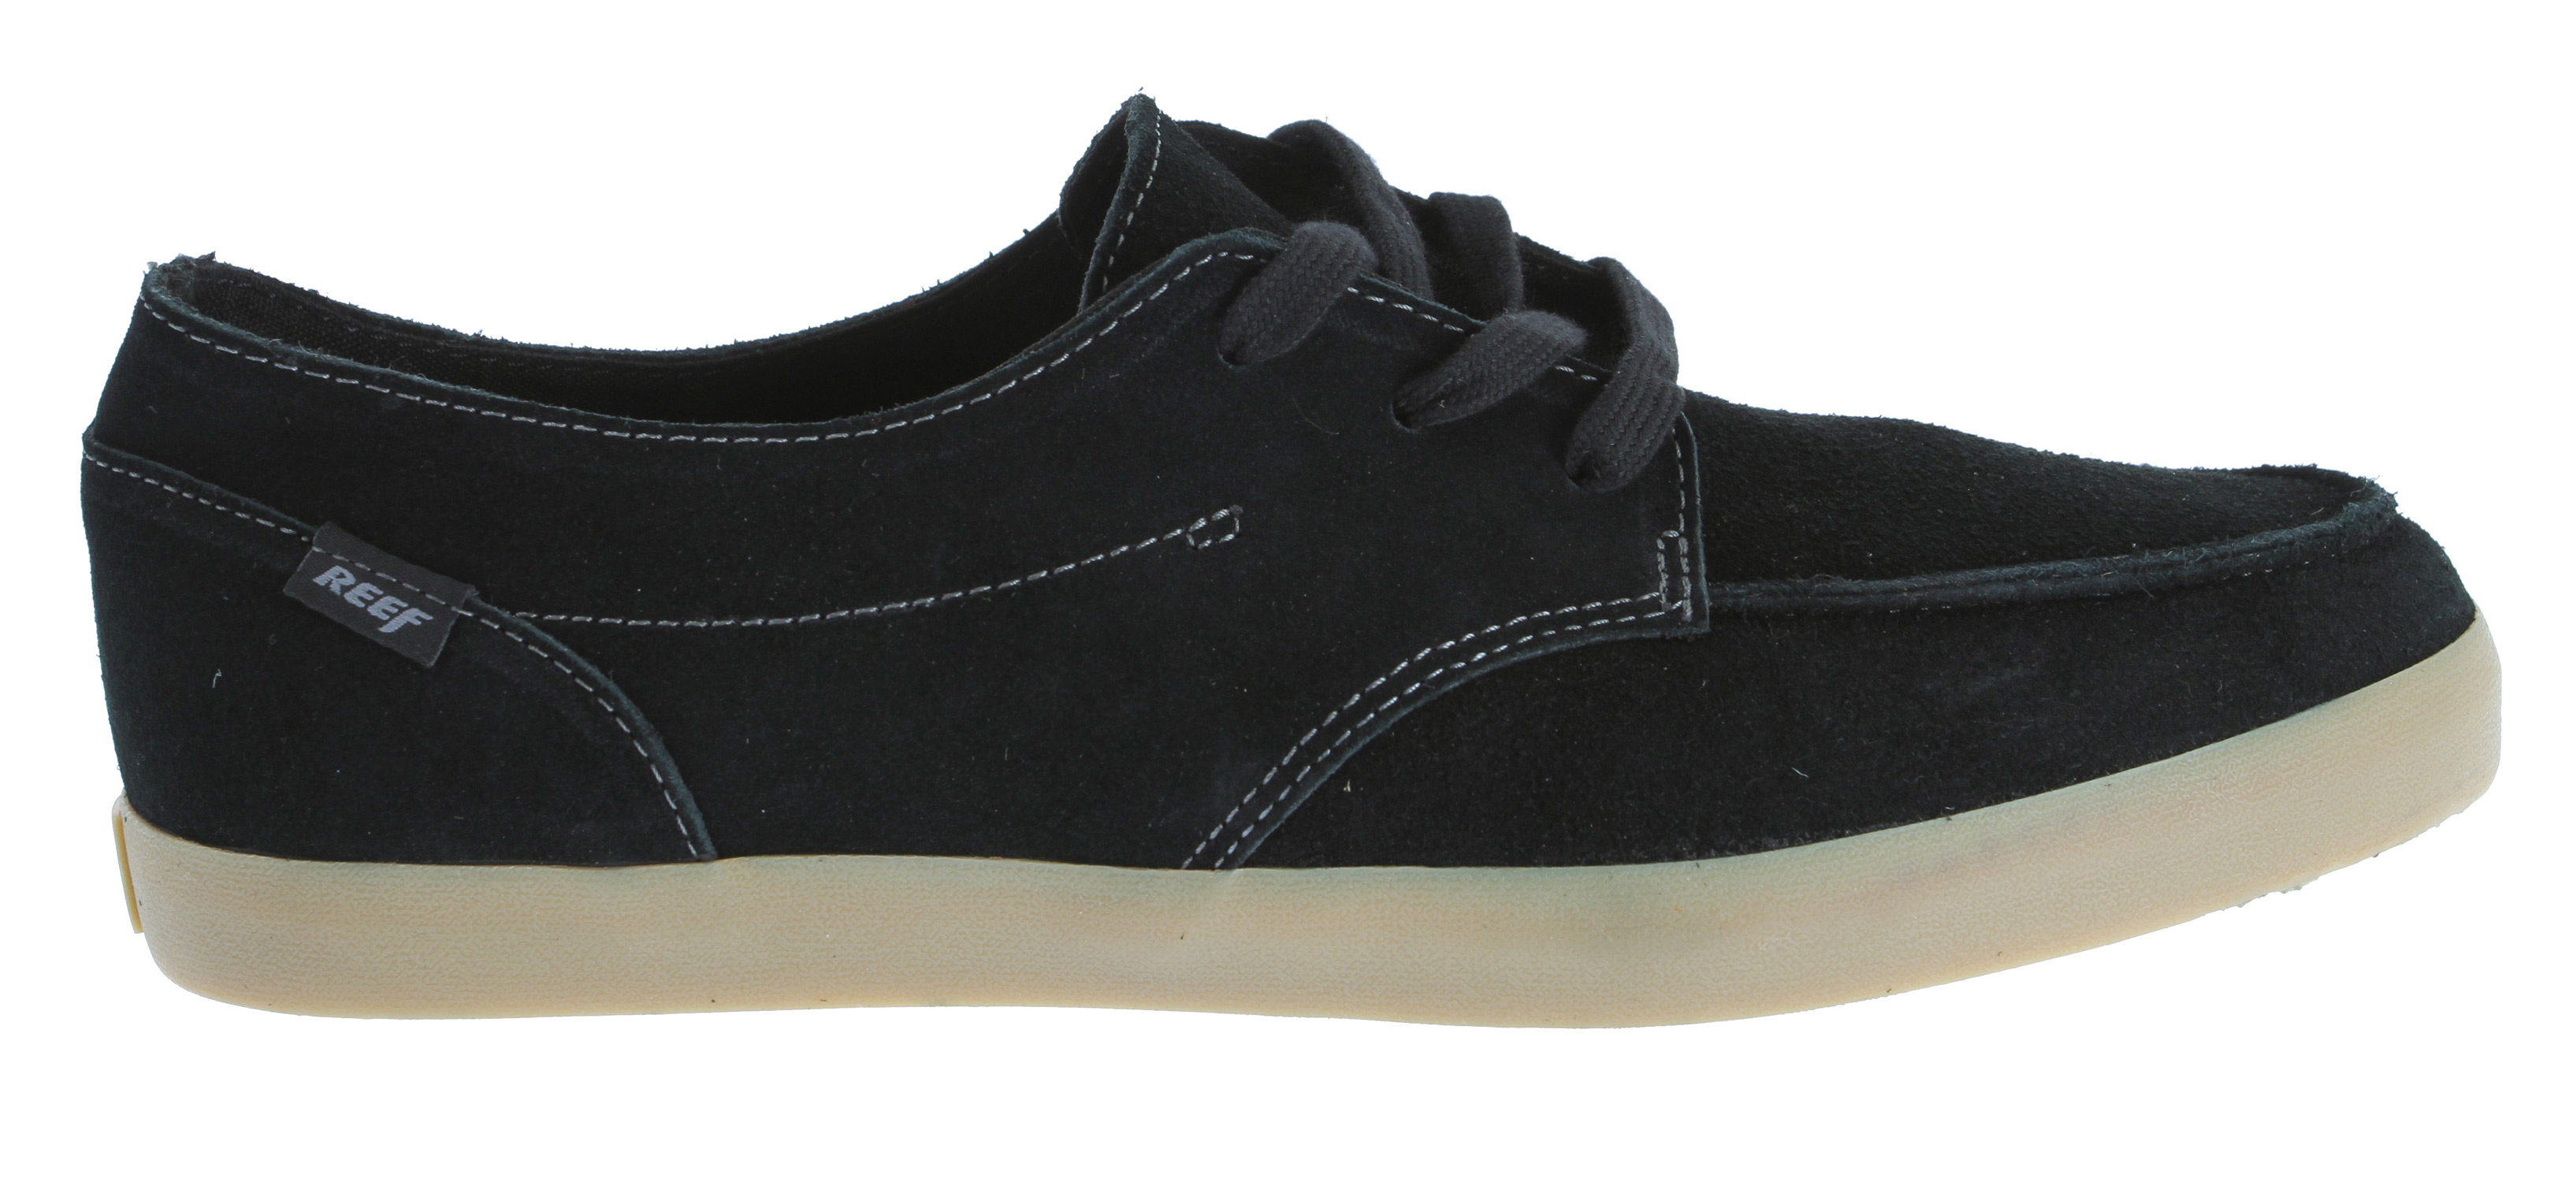 Surf Whether you're boardwalk-bound or making your way downtown, you'll rock the casual look in this hip leather lace-up from Reef. The Deckhand 2 LE Oxford features a soft yet sturdy upper, accented with contrast stitching and logo detail. The canvas lining keeps it comfy and breathable, while the thick rubber midsole gives it a light, grippy feel as well as plenty of retro flair.Key Features of the Reef Deck Hand 2 Le Shoes: Leather upper Fabric lining Manmade sole Anatomical arch support - $34.95